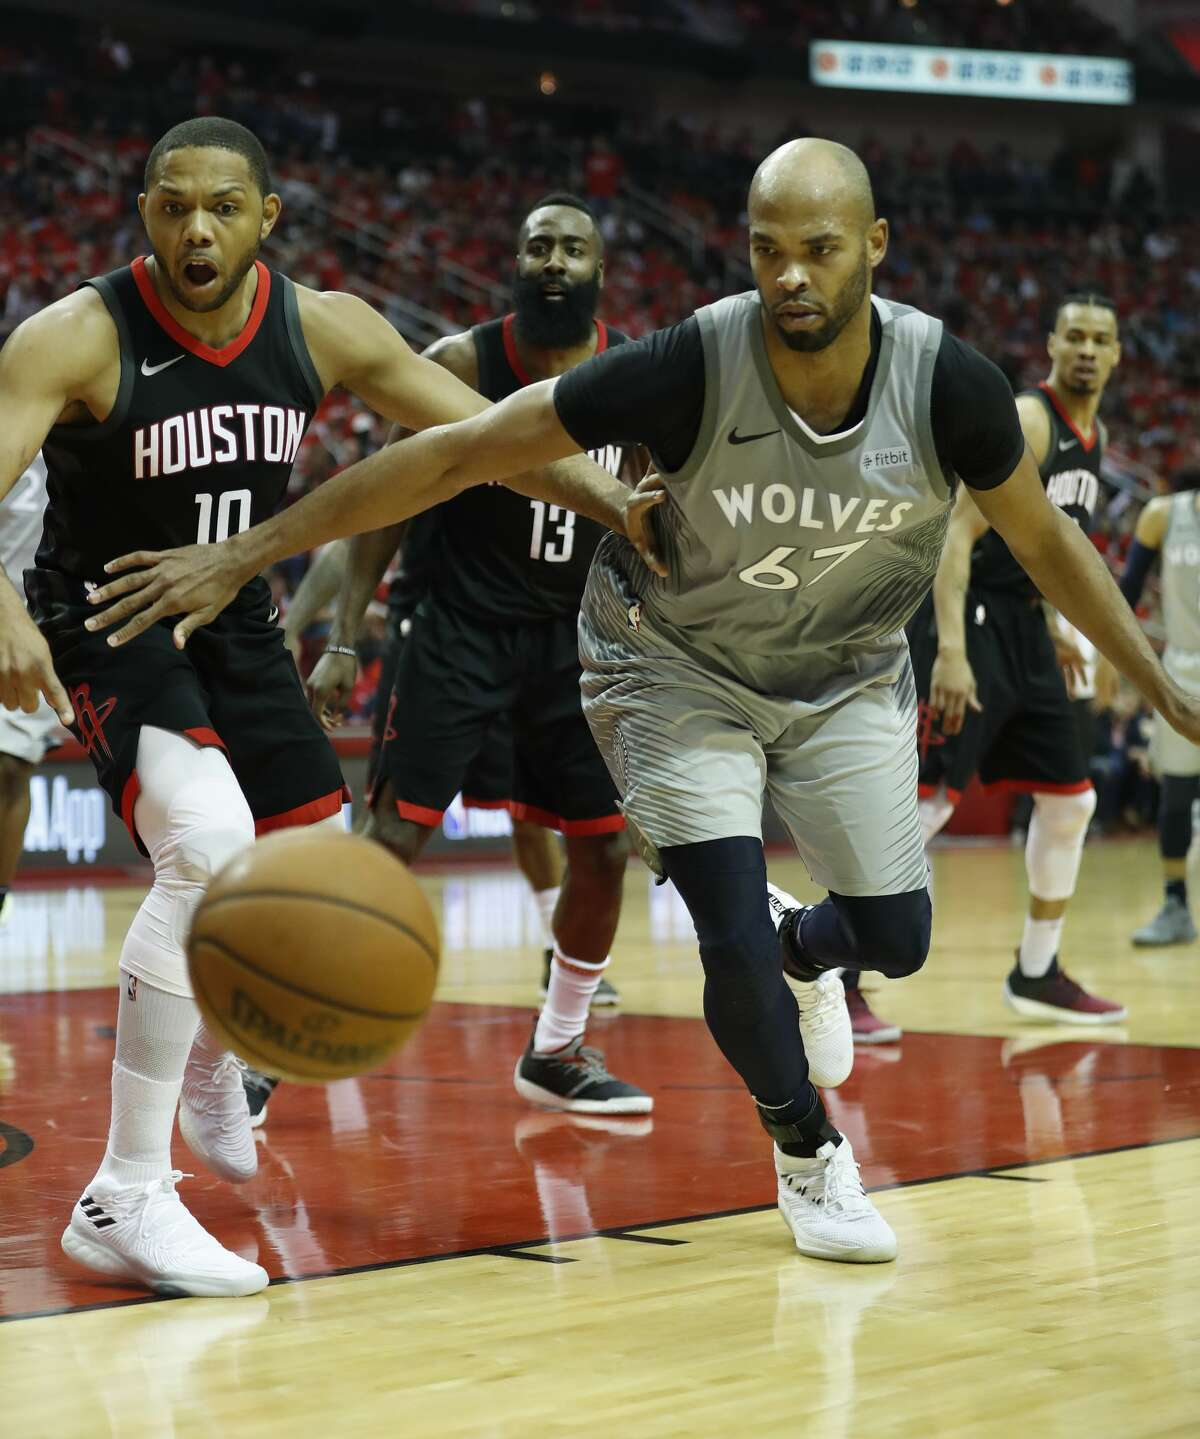 Minnesota Timberwolves forward Taj Gibson (67) and Houston Rockets guard Eric Gordon (10) watch a ball go out of bounds during the second half of Game 2 of an NBA basketball first-round playoff series at Toyota Center on Wednesday, April 18, 2018, in Houston. ( Brett Coomer / Houston Chronicle )